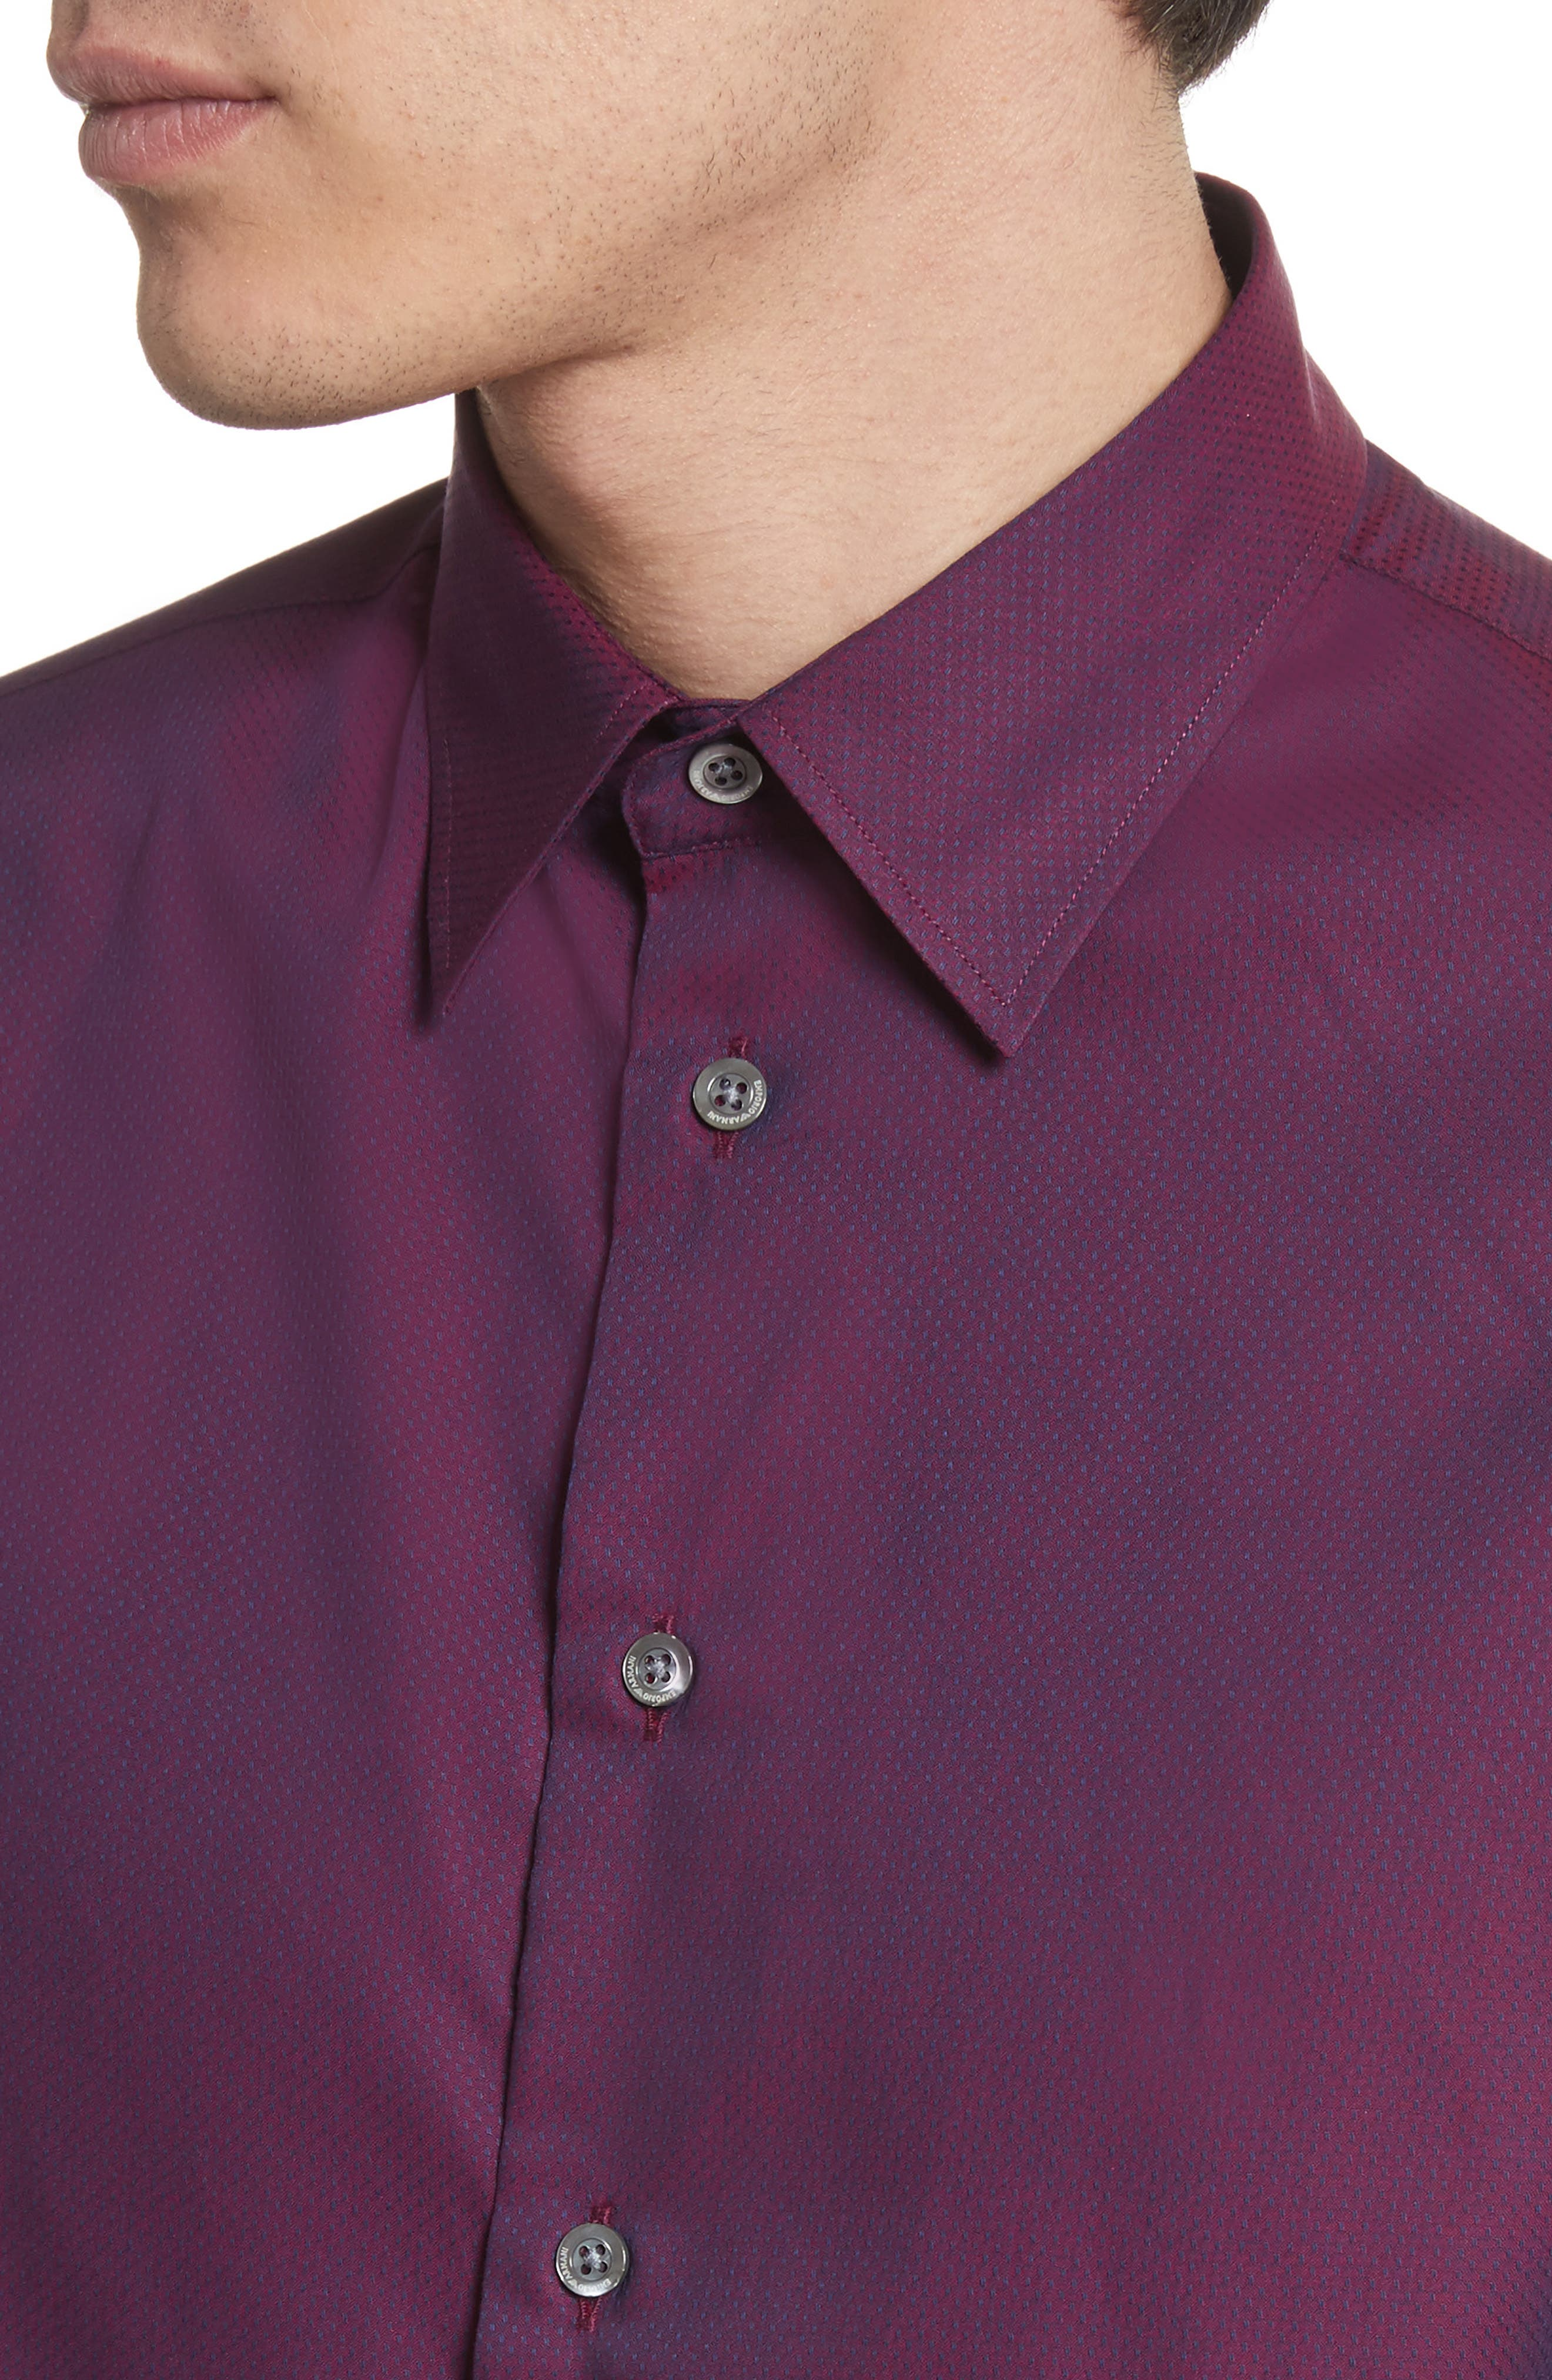 Textured Dot Print Sport Shirt,                             Alternate thumbnail 4, color,                             Fancy Red Tone